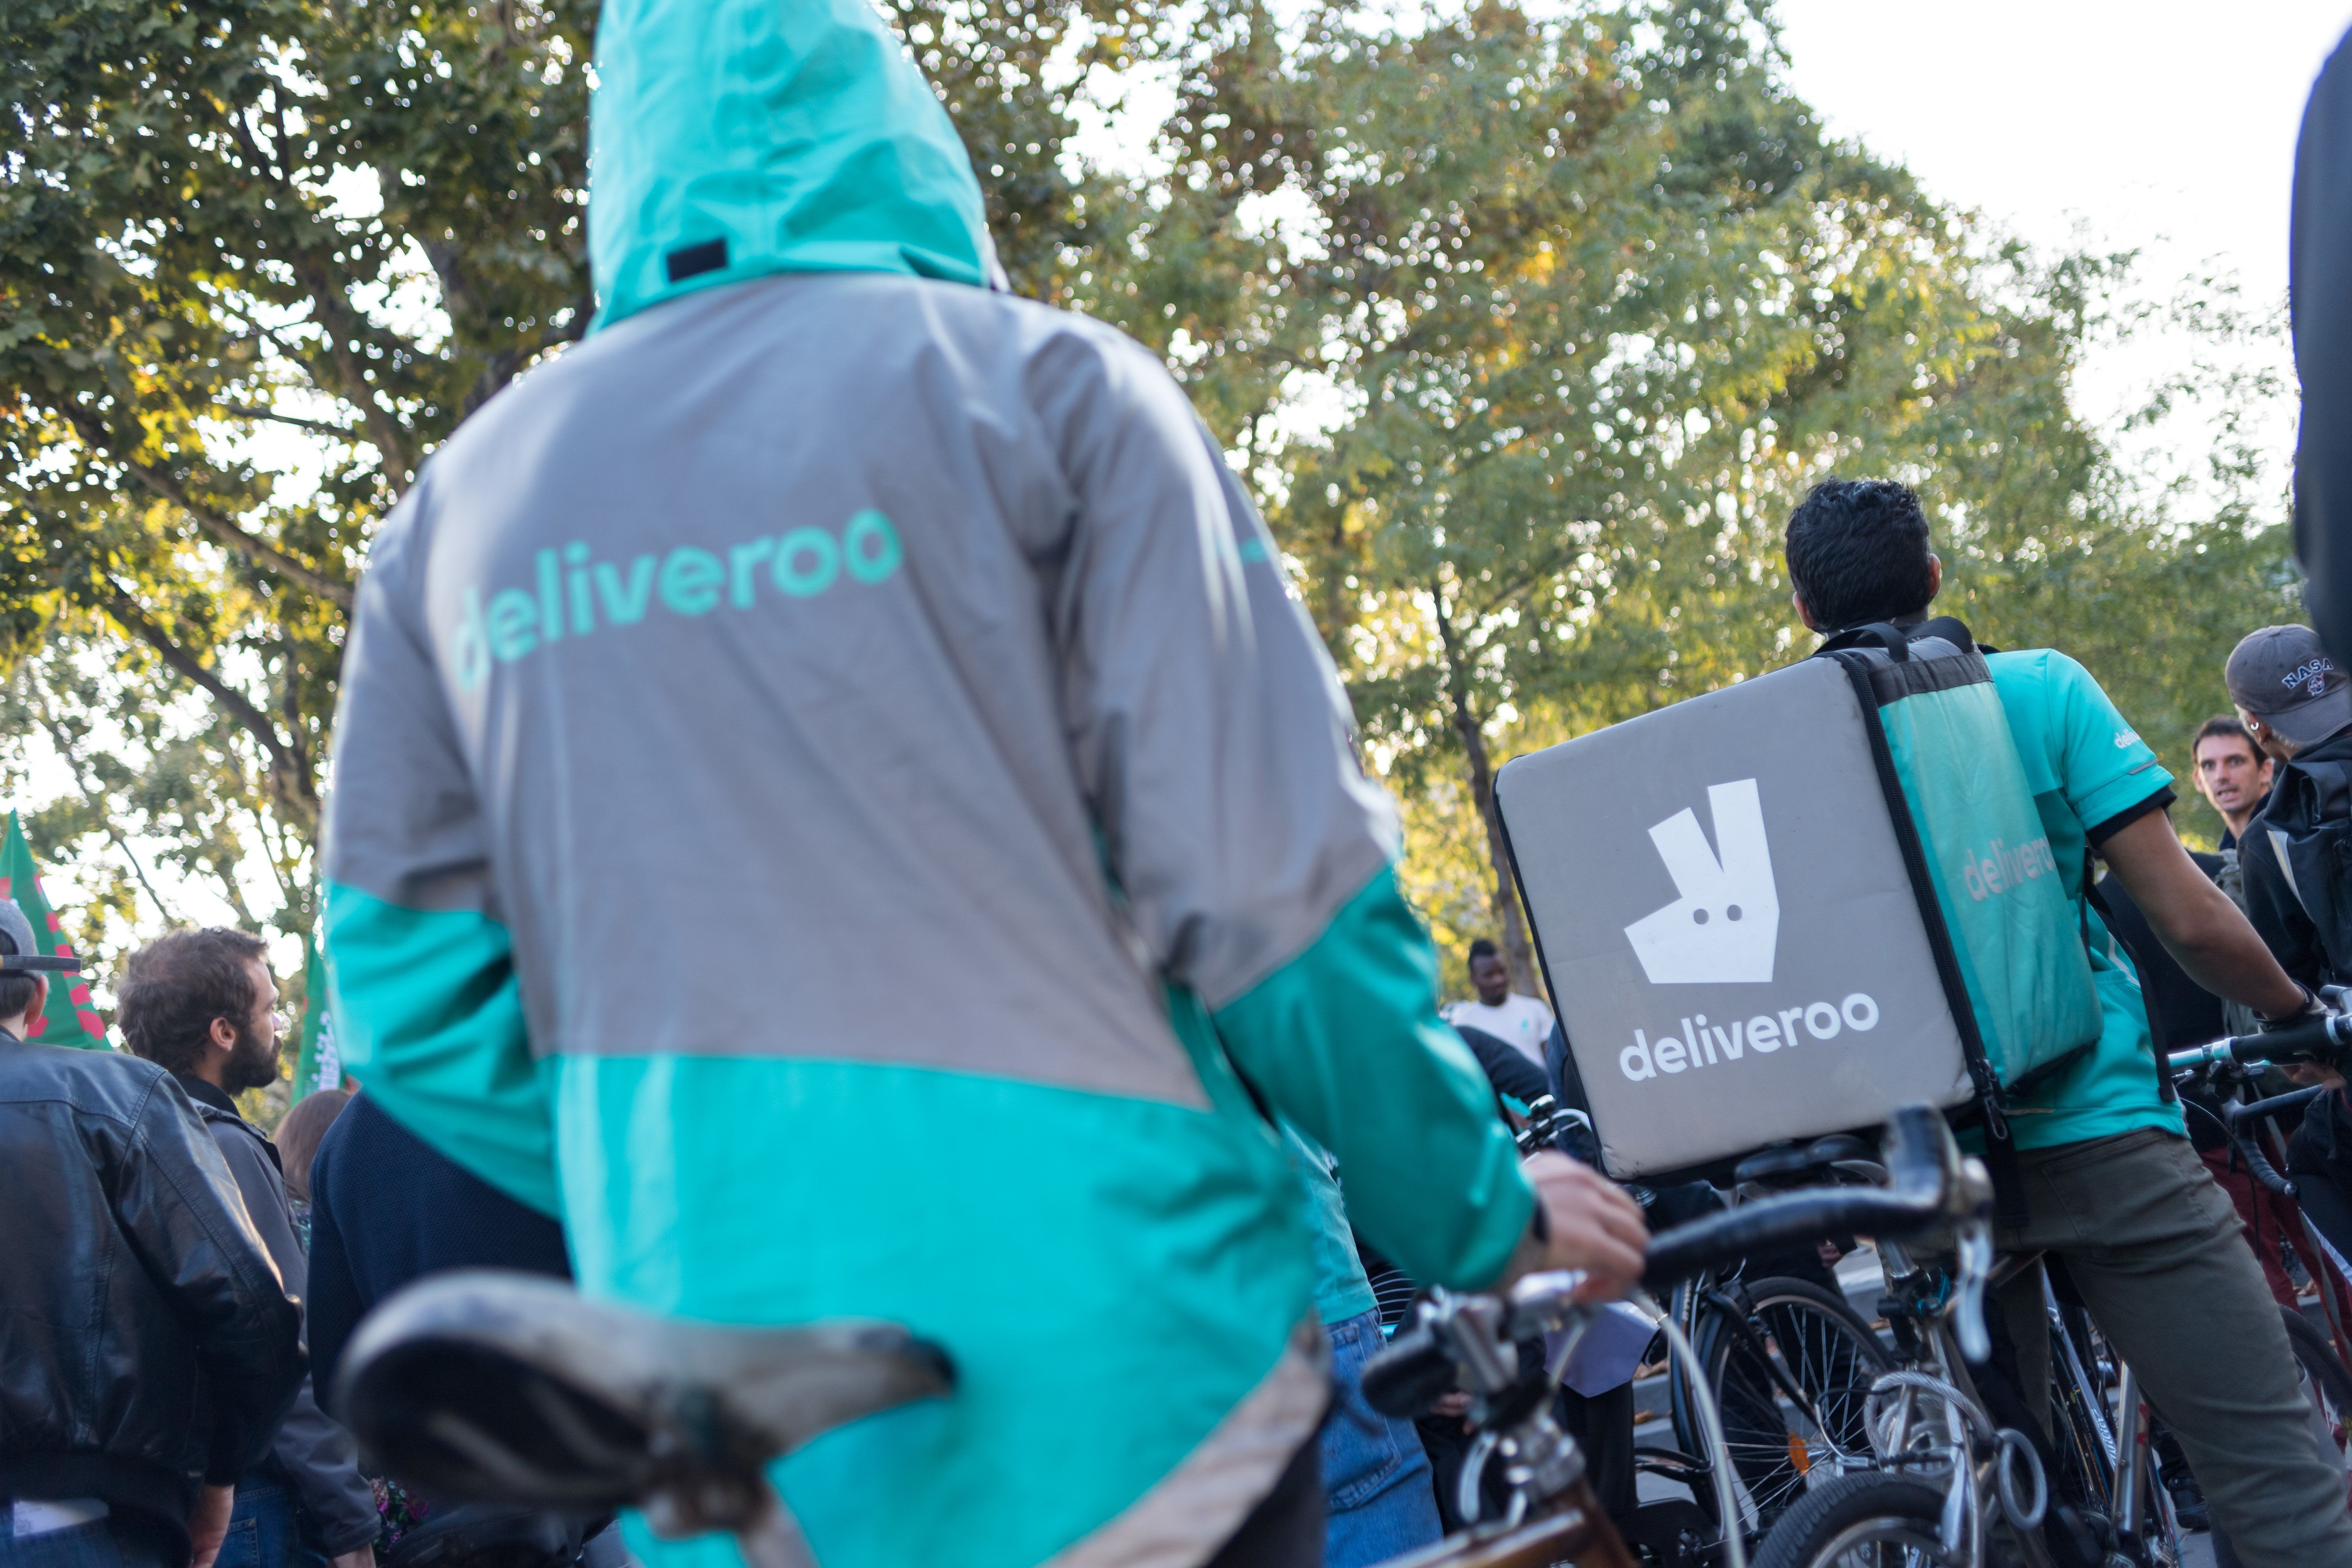 Deliveroo says it wants to offer riders better benefits.